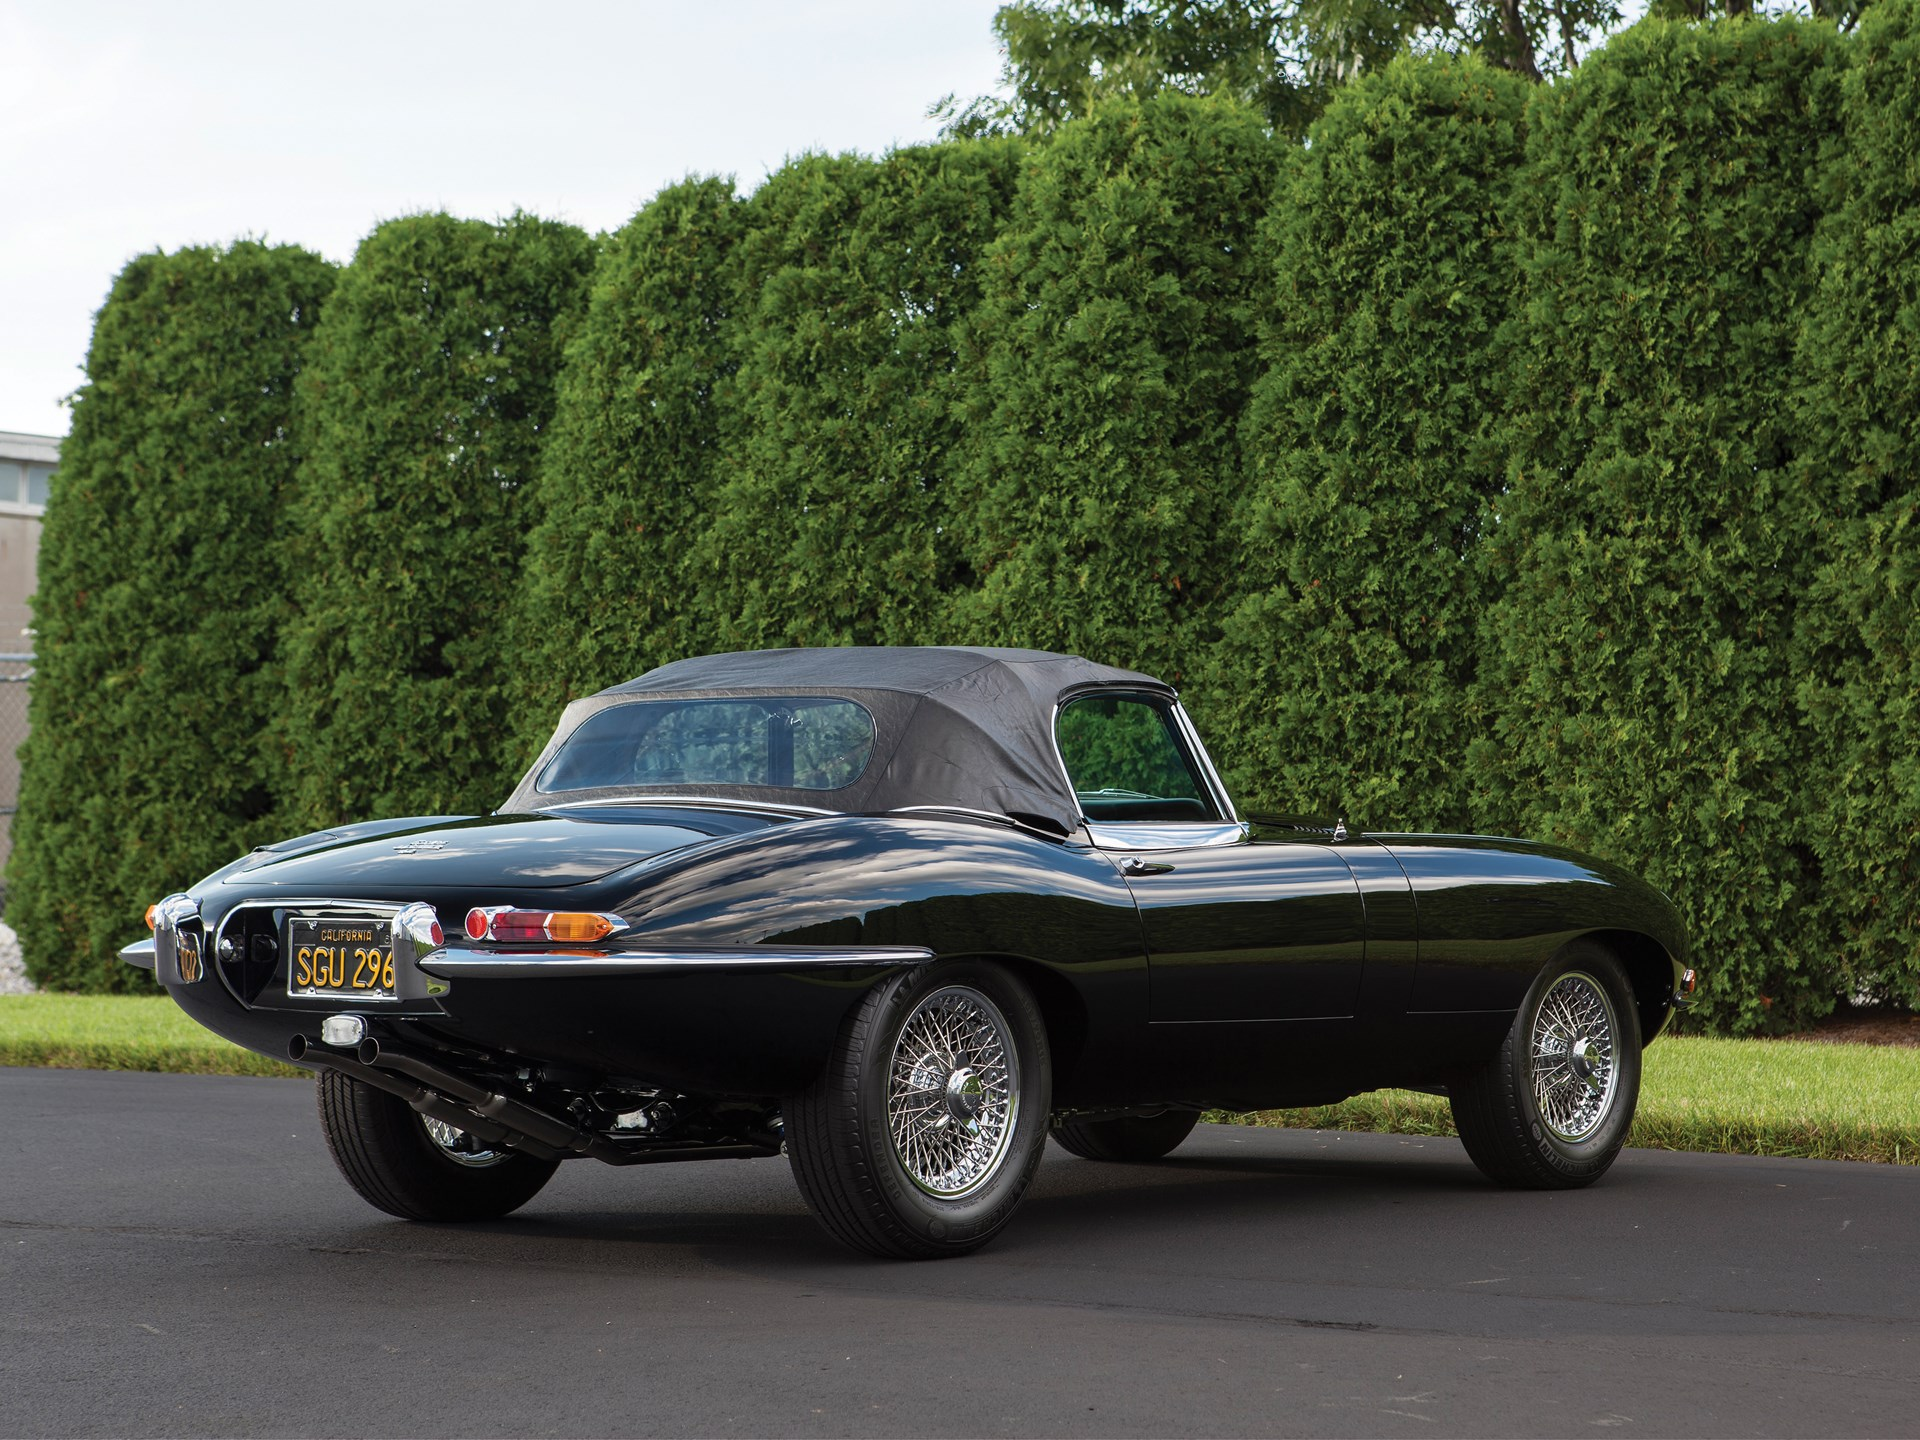 1966 Jaguar E Type Series 1 4.2 Litre Roadster